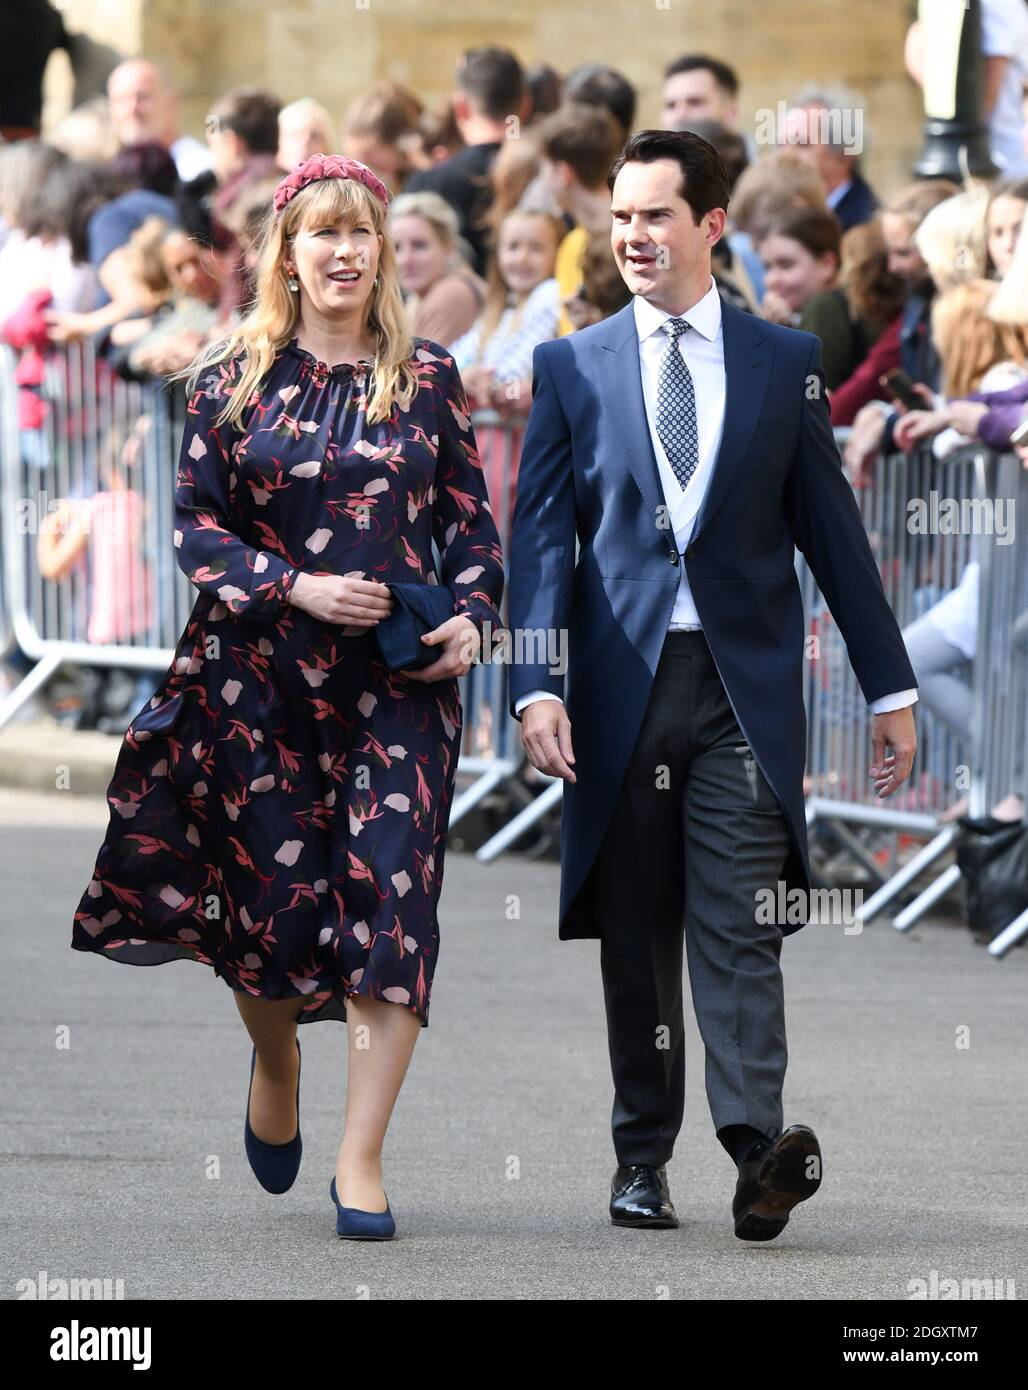 Jimmy Carr And Karoline Copping Arriving At The Wedding Of Ellie Goulding And Casper Jopling York Minster Photo Credit Should Read Doug Peters Empics Stock Photo Alamy Karoline copping pictures to create karoline copping ecards, custom profiles, blogs, wall posts, and karoline copping scrapbooks, page 1 of 4. alamy